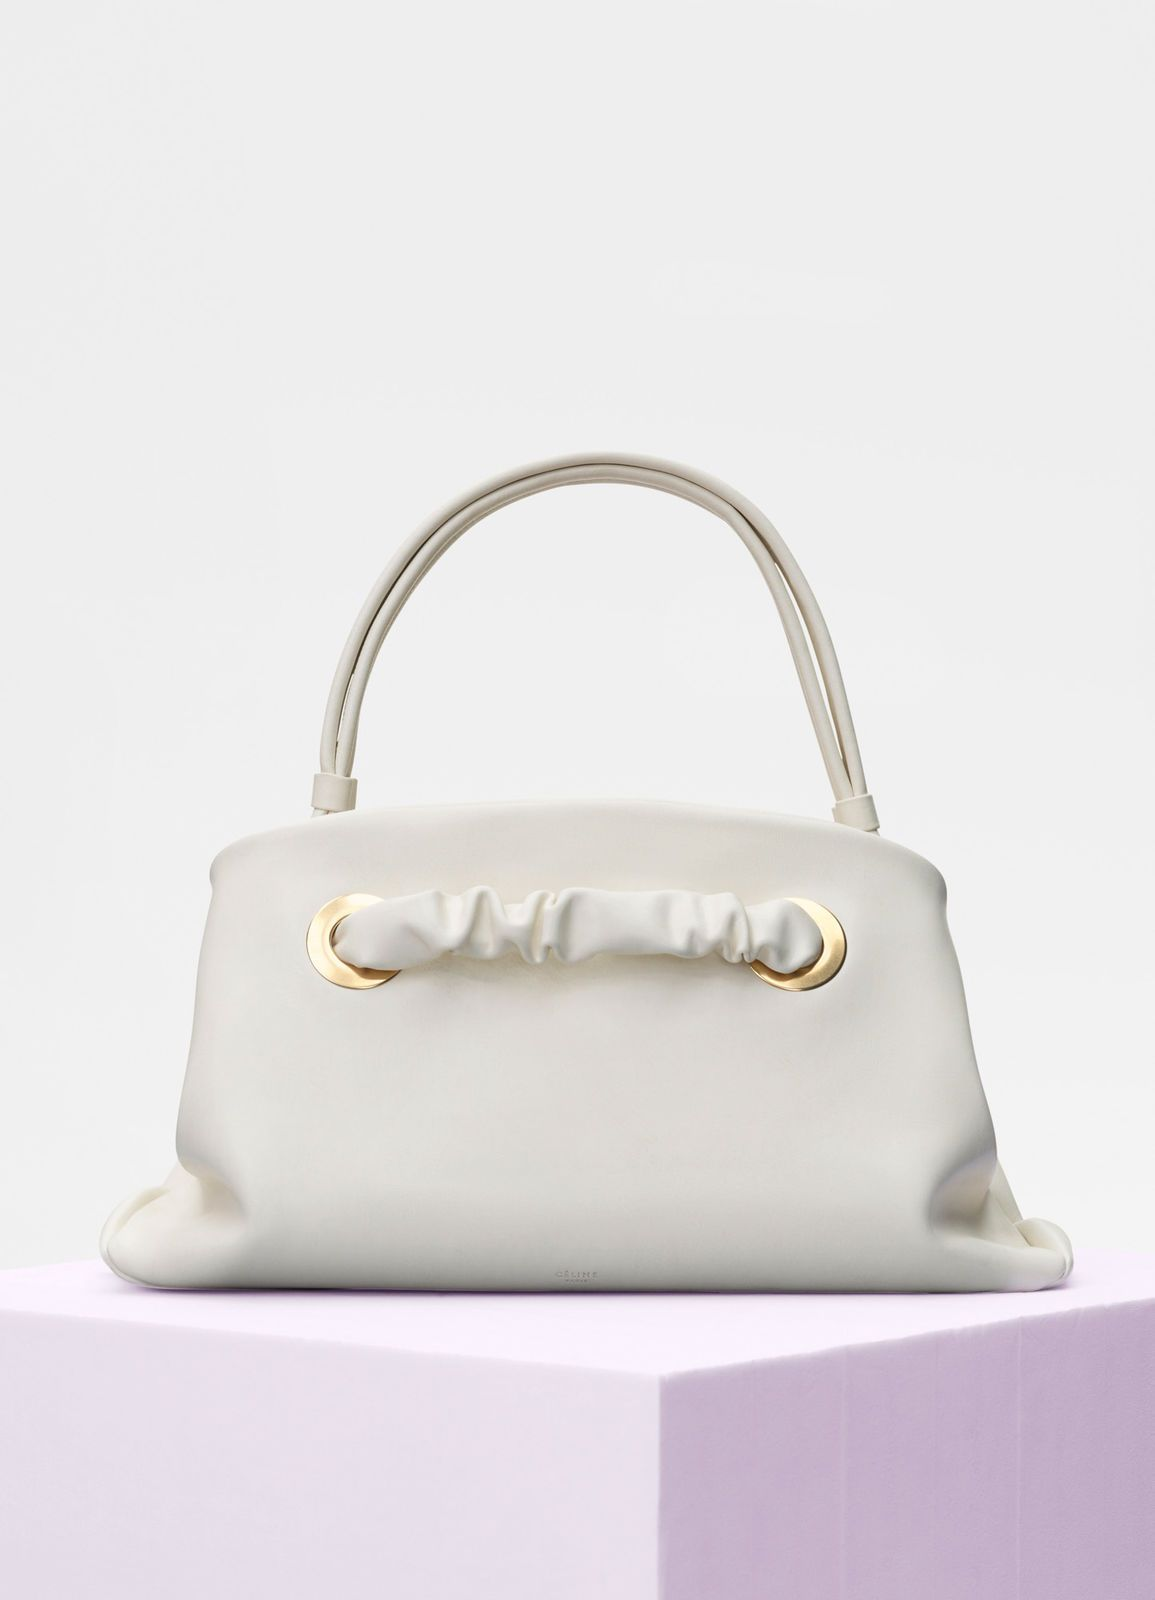 92a318fe7a Céline - Small purse with eyelets bag in shiny white calfskin